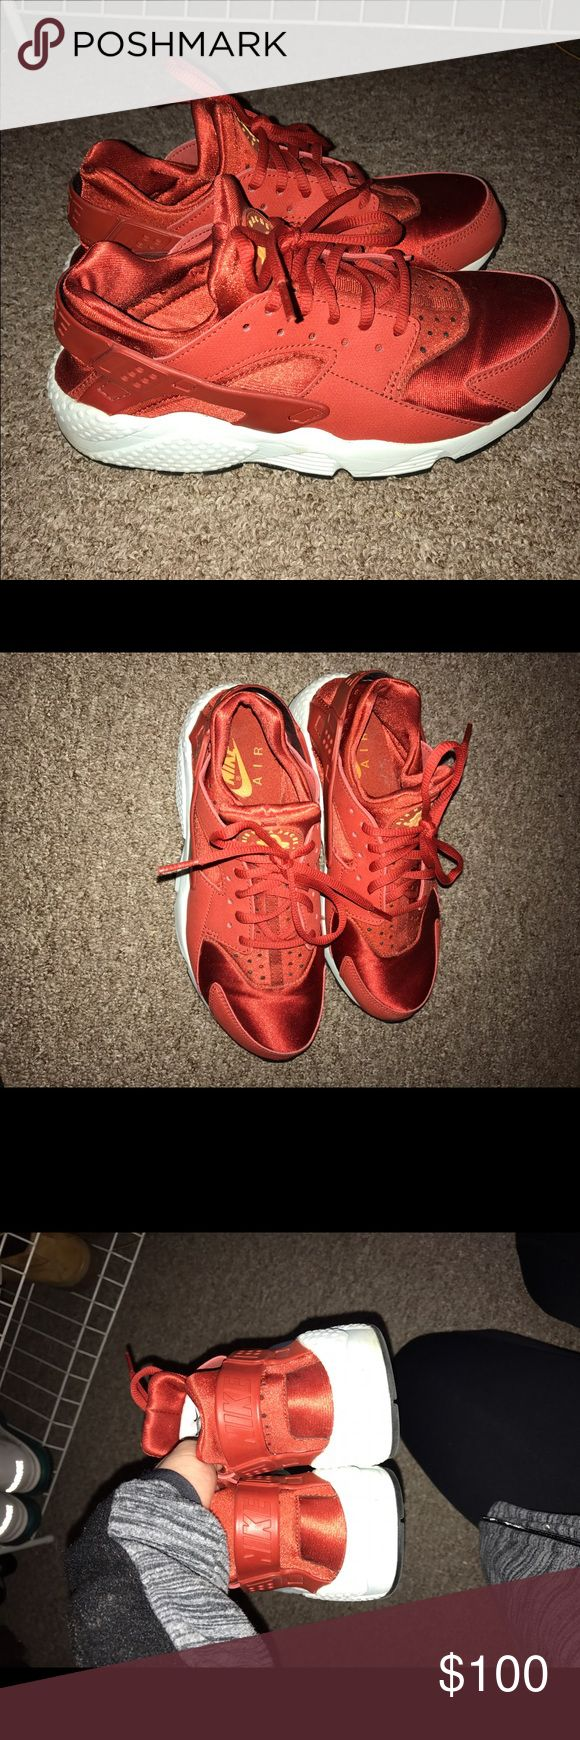 4db859228d88e Women s Nike Huaraches Red Size 8.5 ...